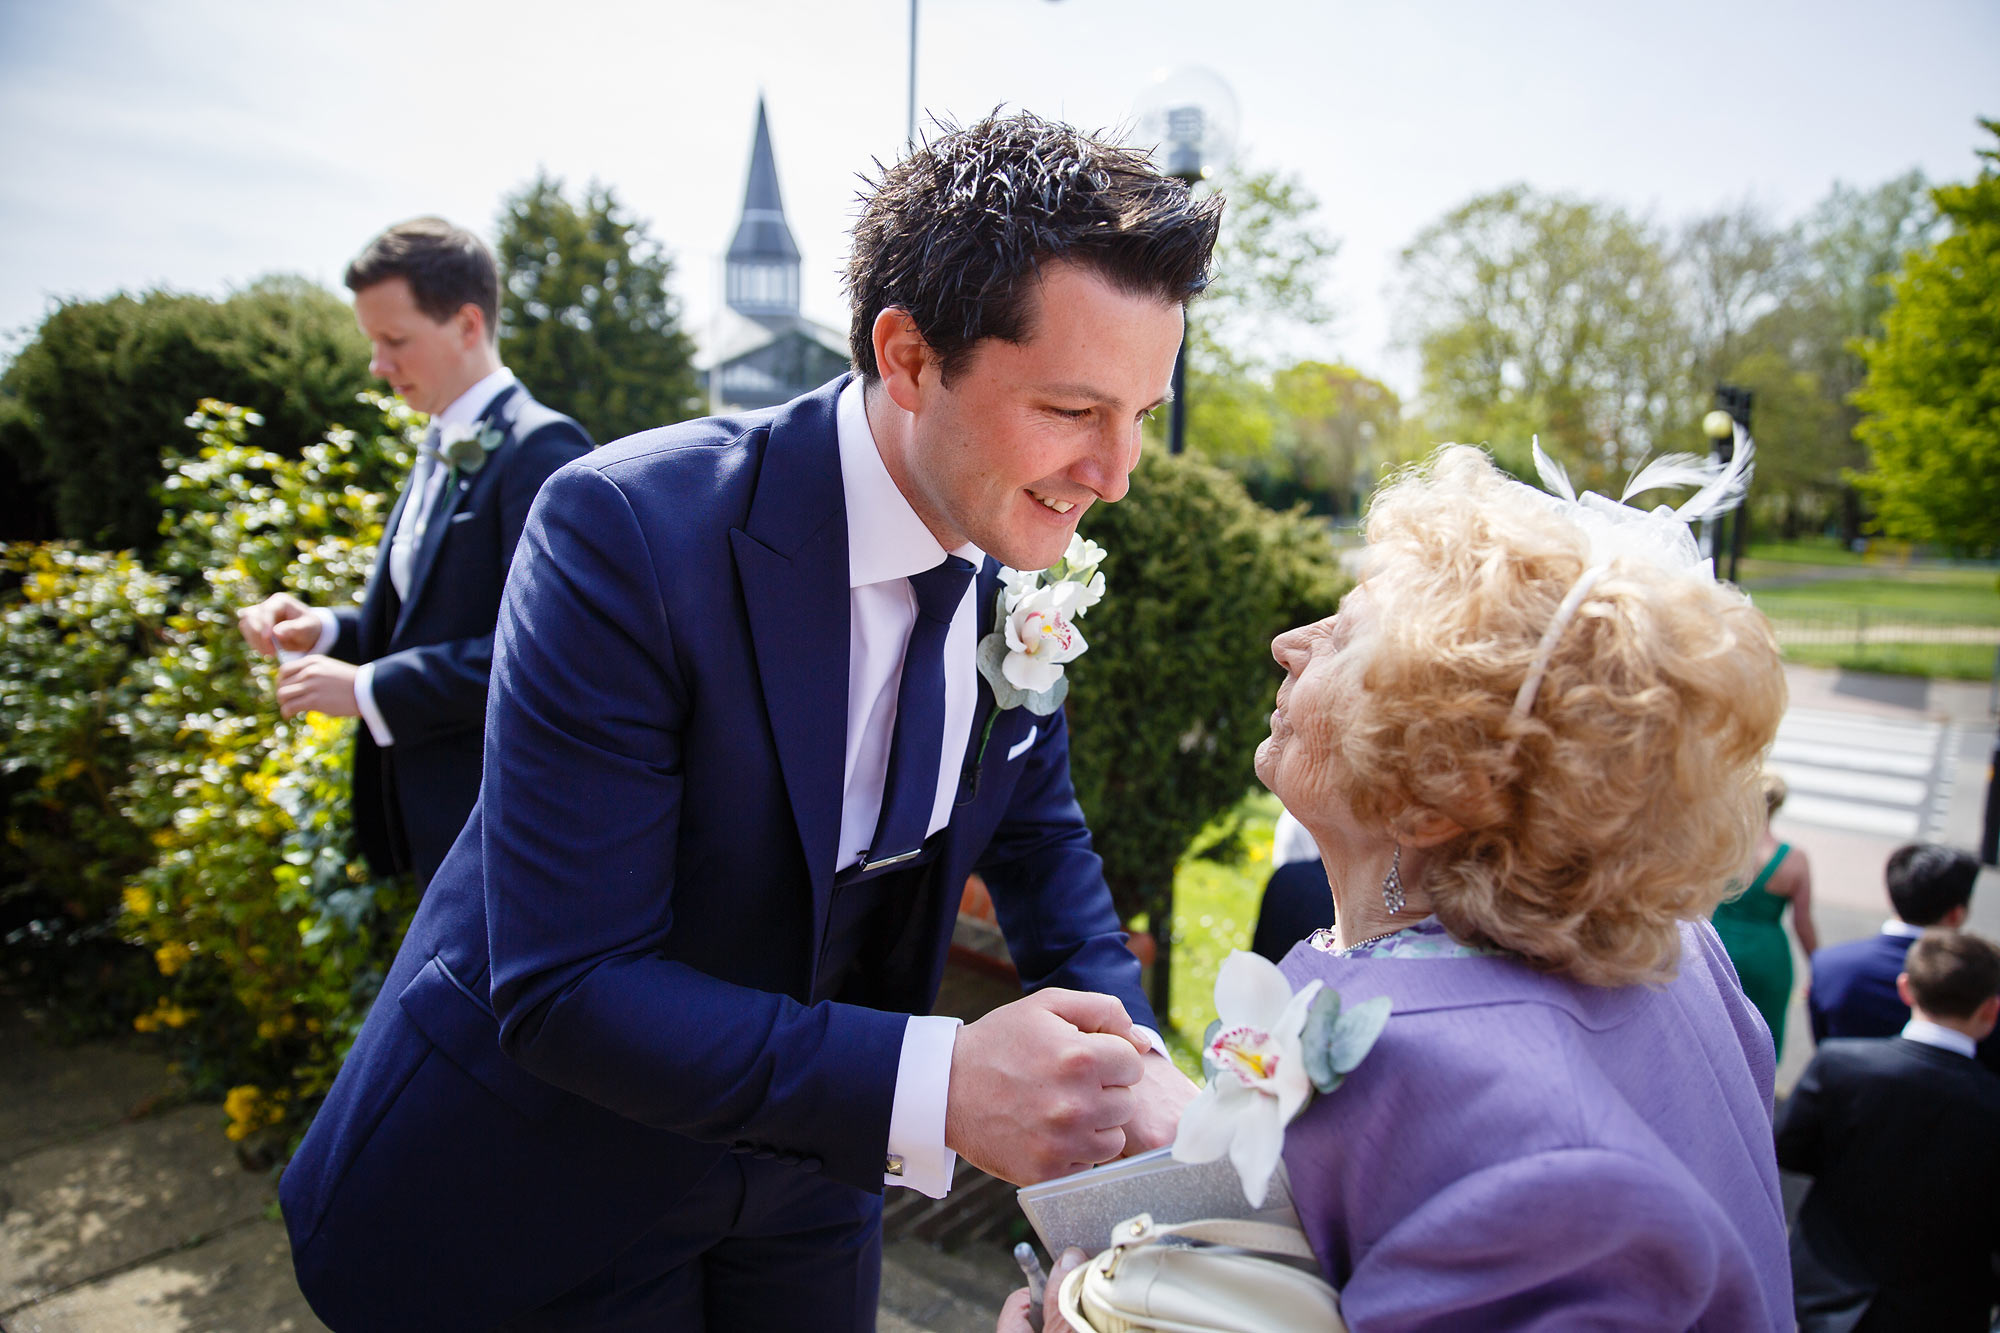 gran congratulates groom